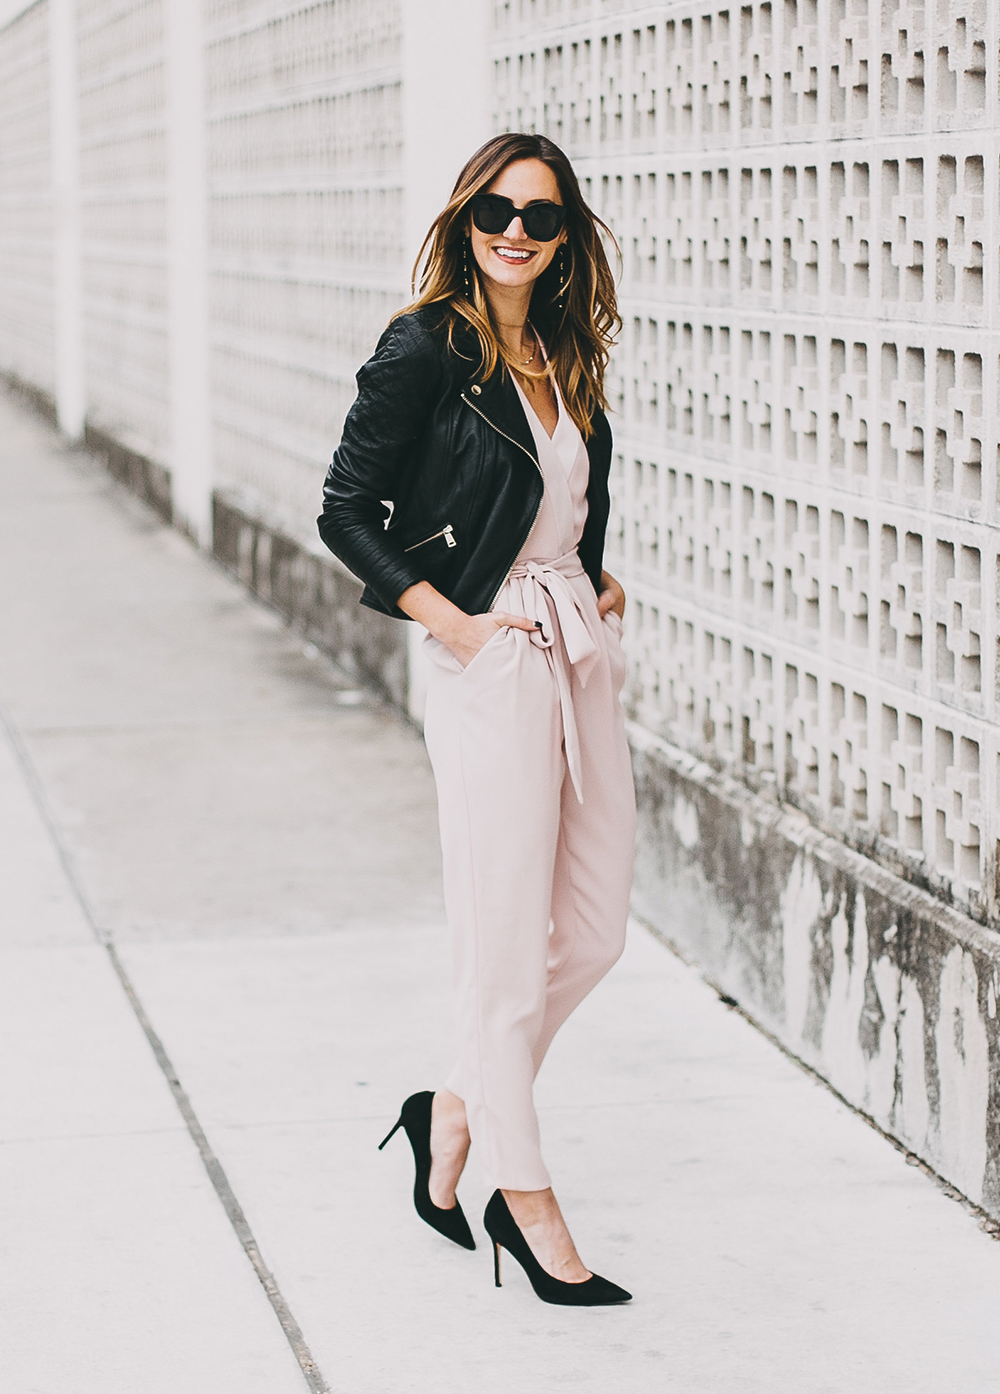 livvyland-river-island-blush-pink-jumpsuit-black-leather-jacket-holiday-party-nye-outfit-inspiration-ideas-4